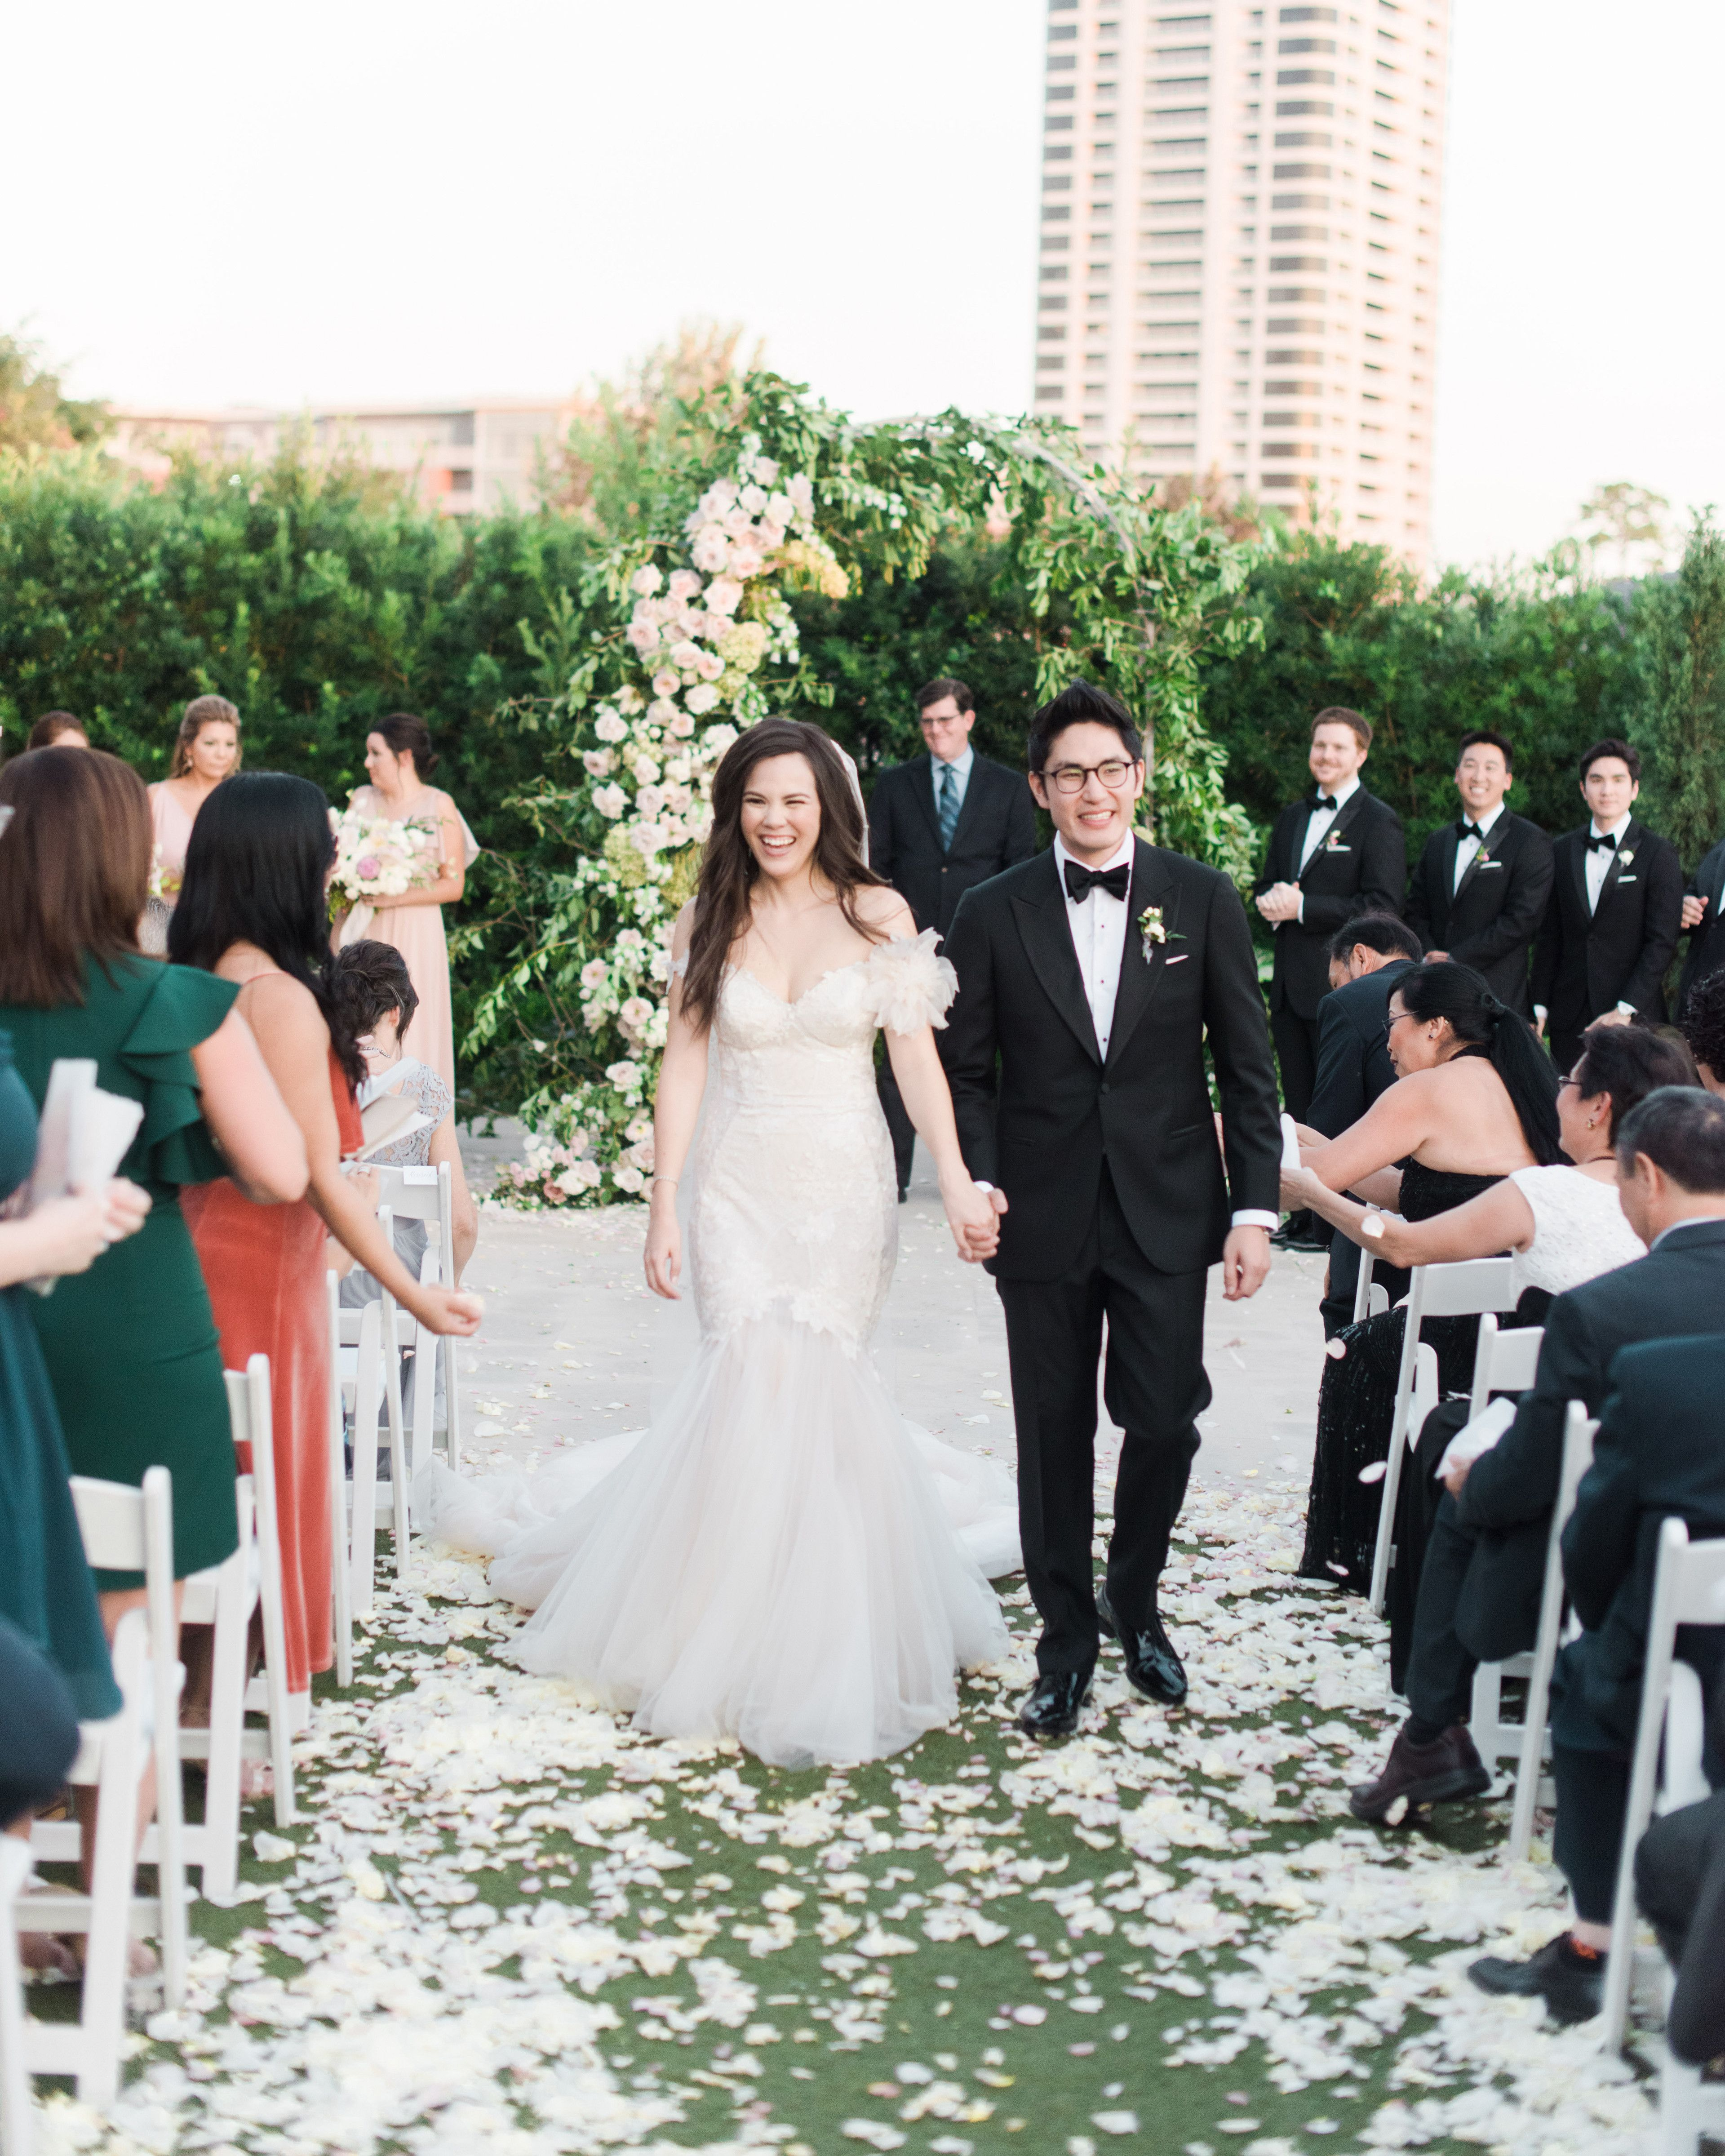 A Romantic Garden Wedding In The Heart Of Houston Texas Romantic Garden Wedding Wedding Wedding Recessional